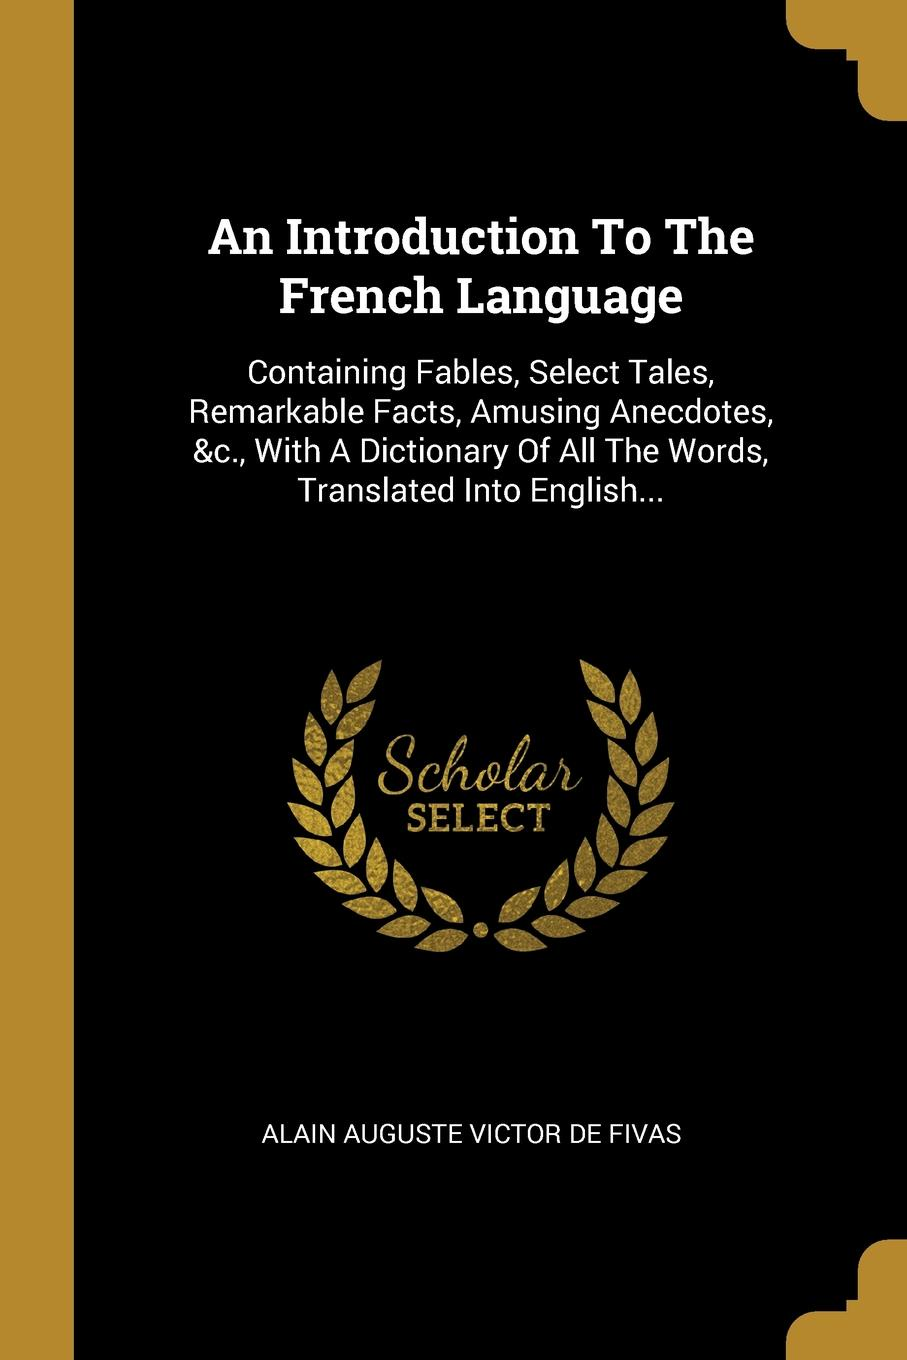 An Introduction To The French Language. Containing Fables, Select Tales, Remarkable Facts, Amusing Anecdotes, .c., With A Dictionary Of All The Words, Translated Into English...